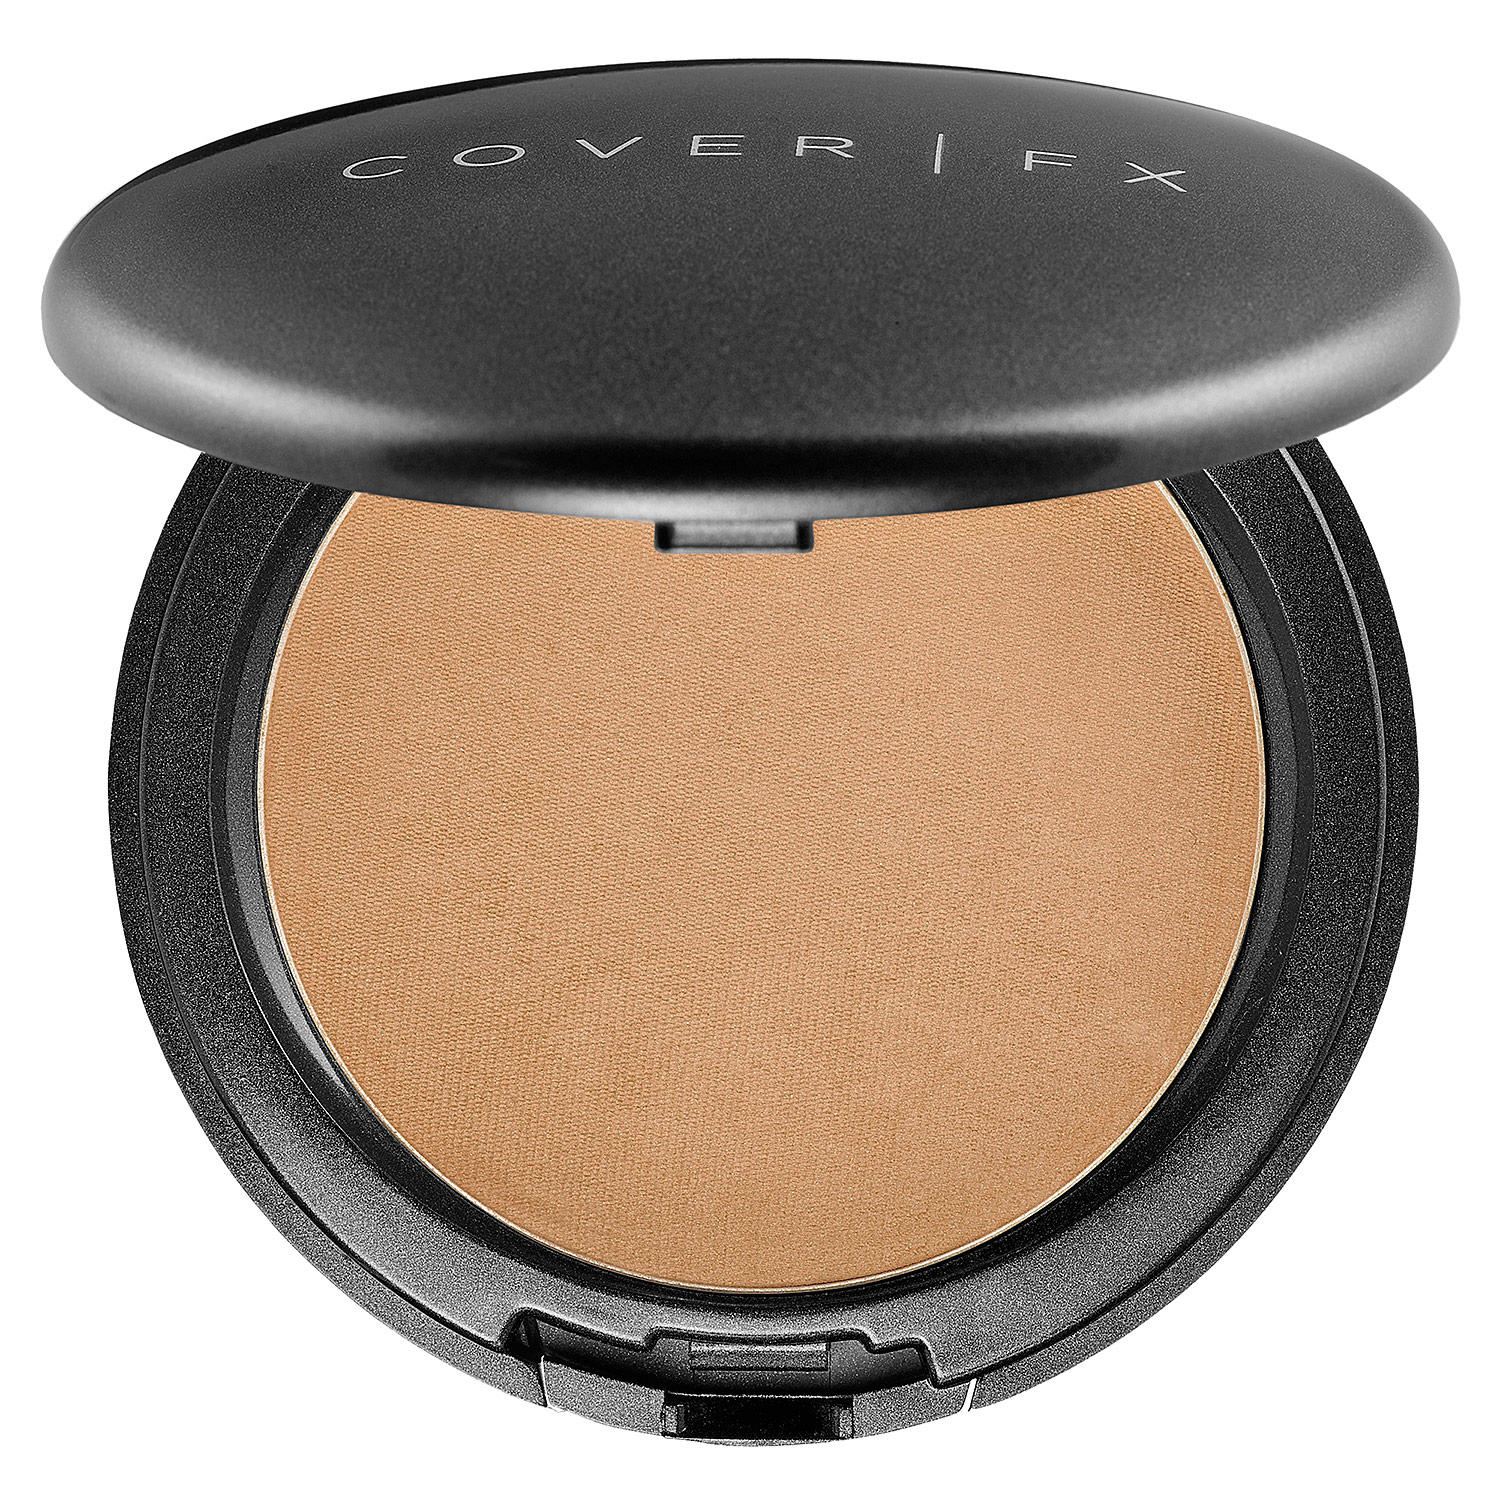 Cover FX Bronzer Sunkissed